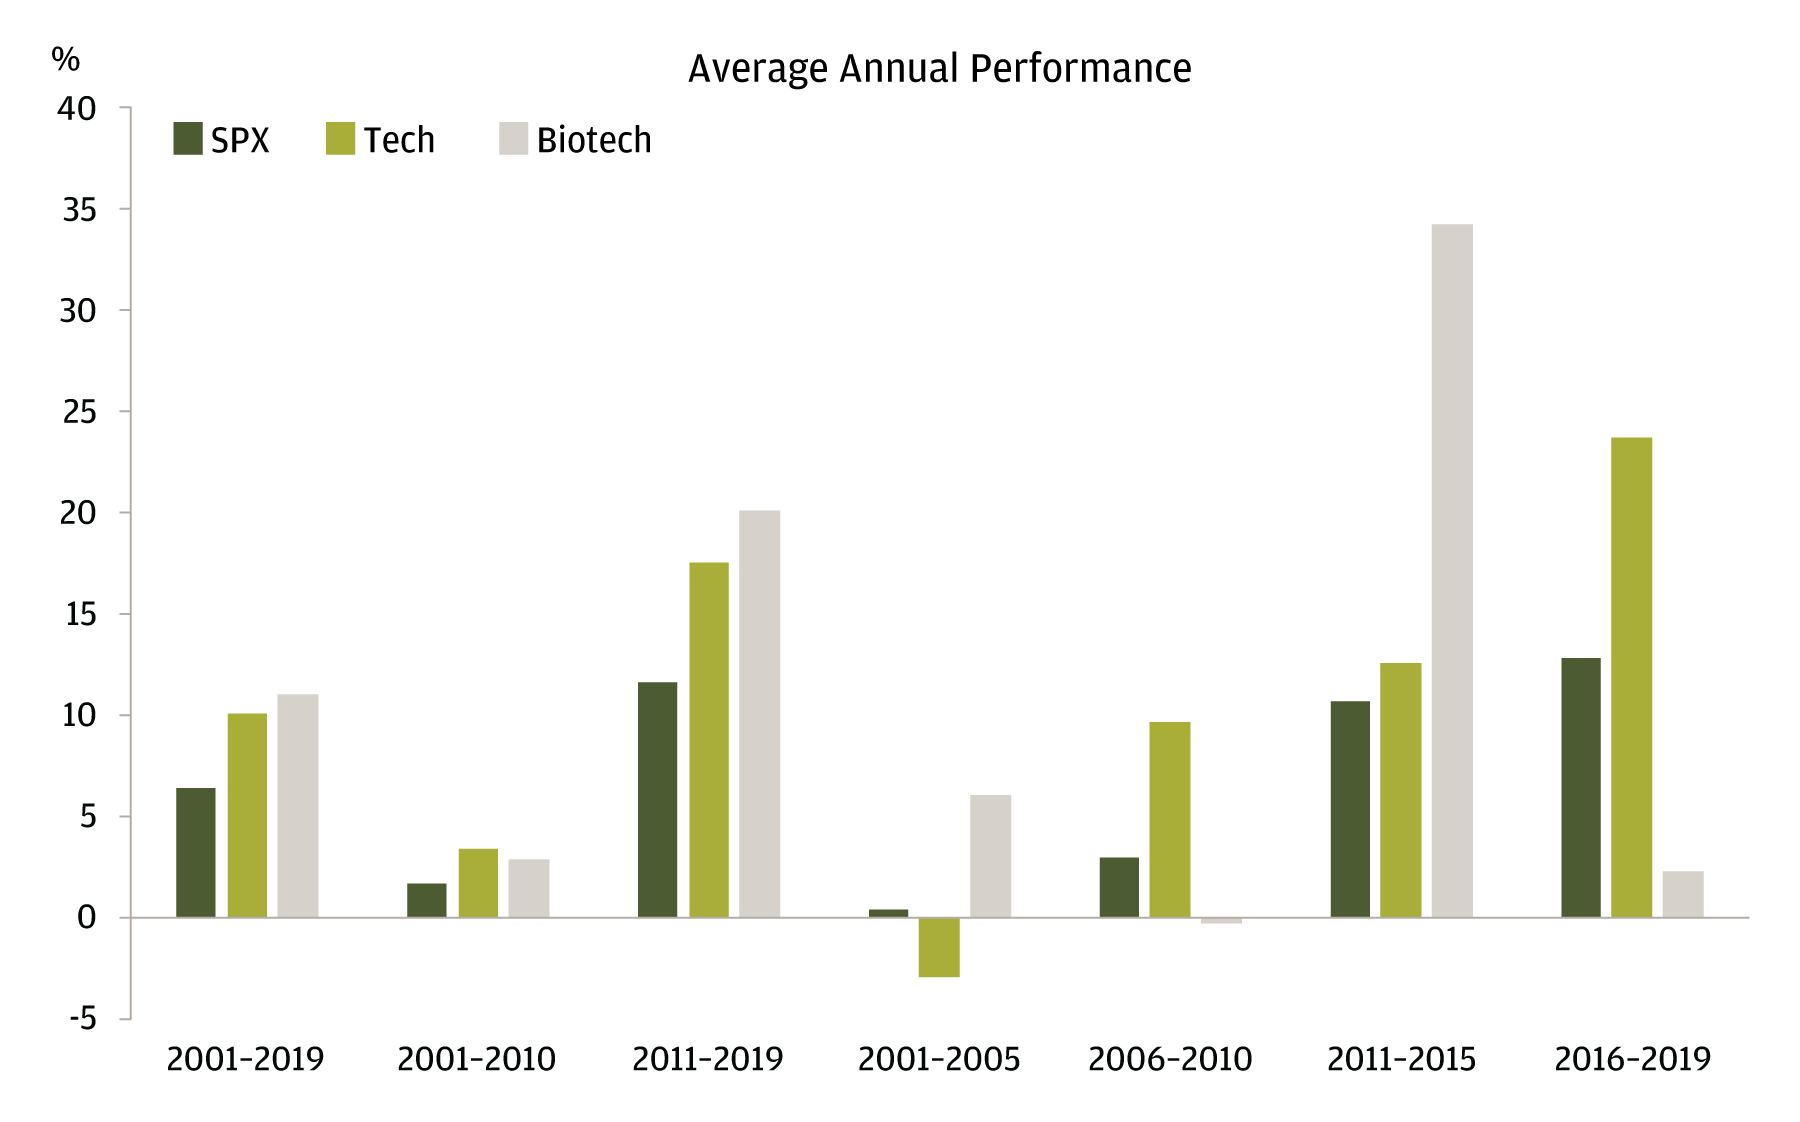 The bar chart shows a comparison of the average annual performance over a variety of time periods in the past two decades for SPX, tech, and biotech. The chart shows that tech and biotech have cumulatively outperformed the SPX over the past two decades, although they have not outperformed in every time frame.